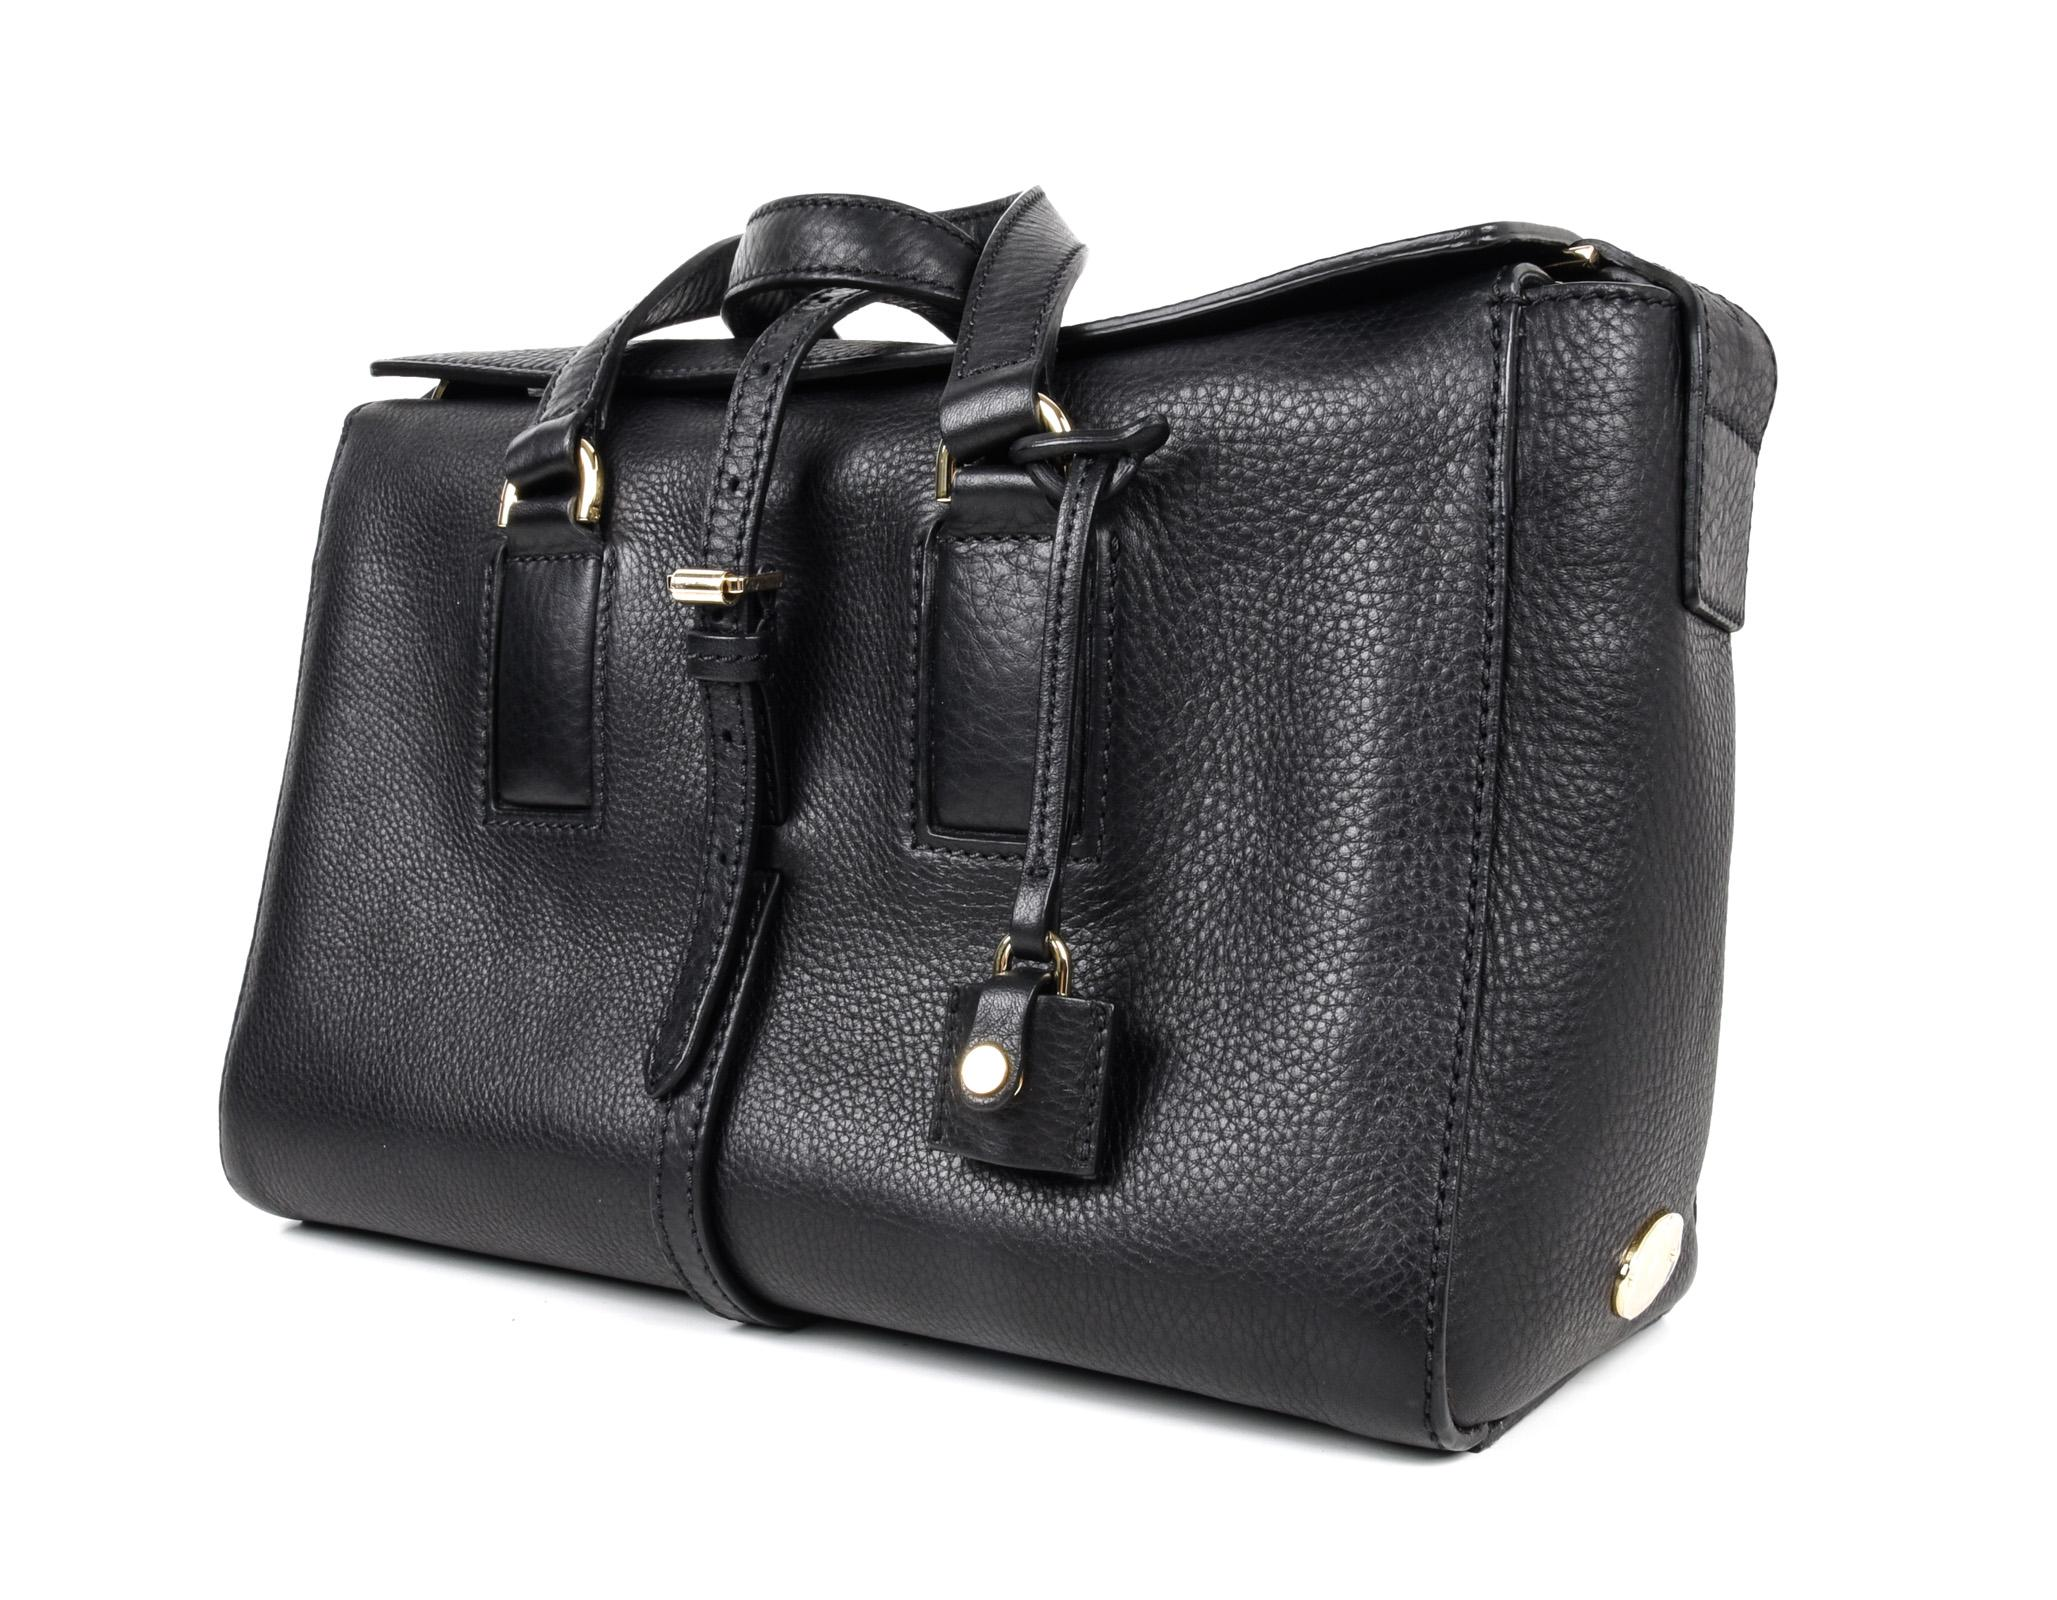 c1531ec910 ... new zealand mulberry bag small black leather w shoulder strap new in  new condition for sale